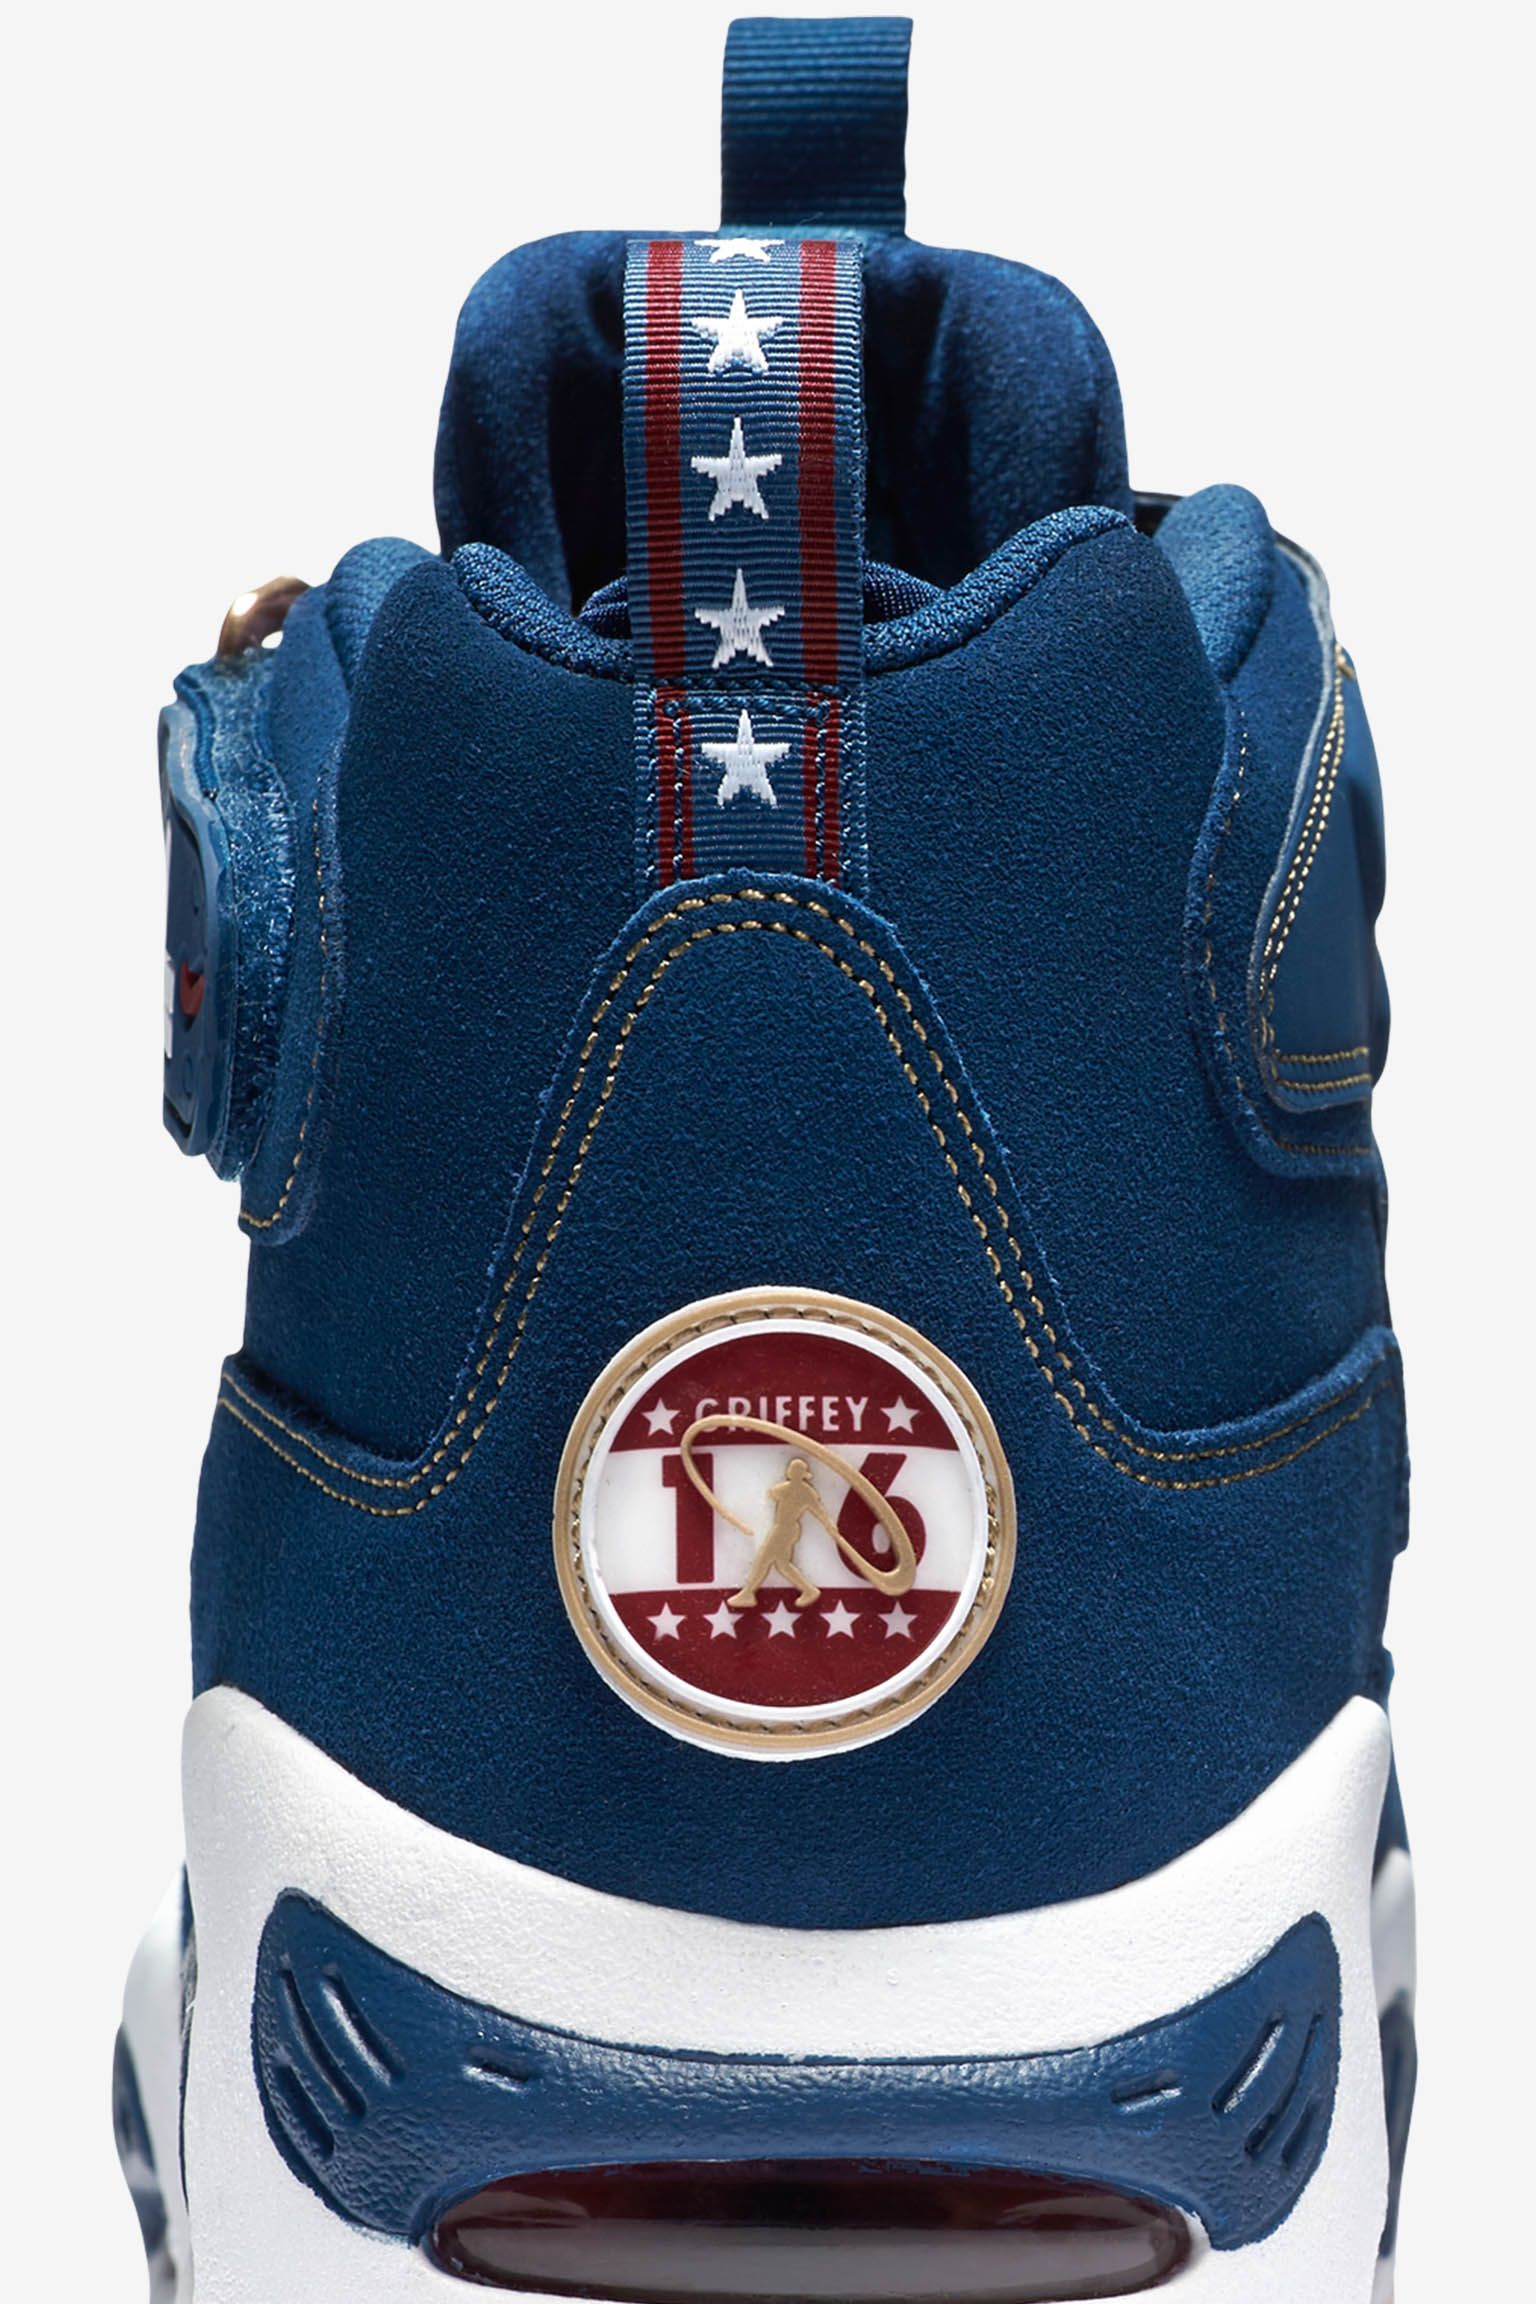 Nike Air Griffey Max 1 'Griffey for Prez' Release Date